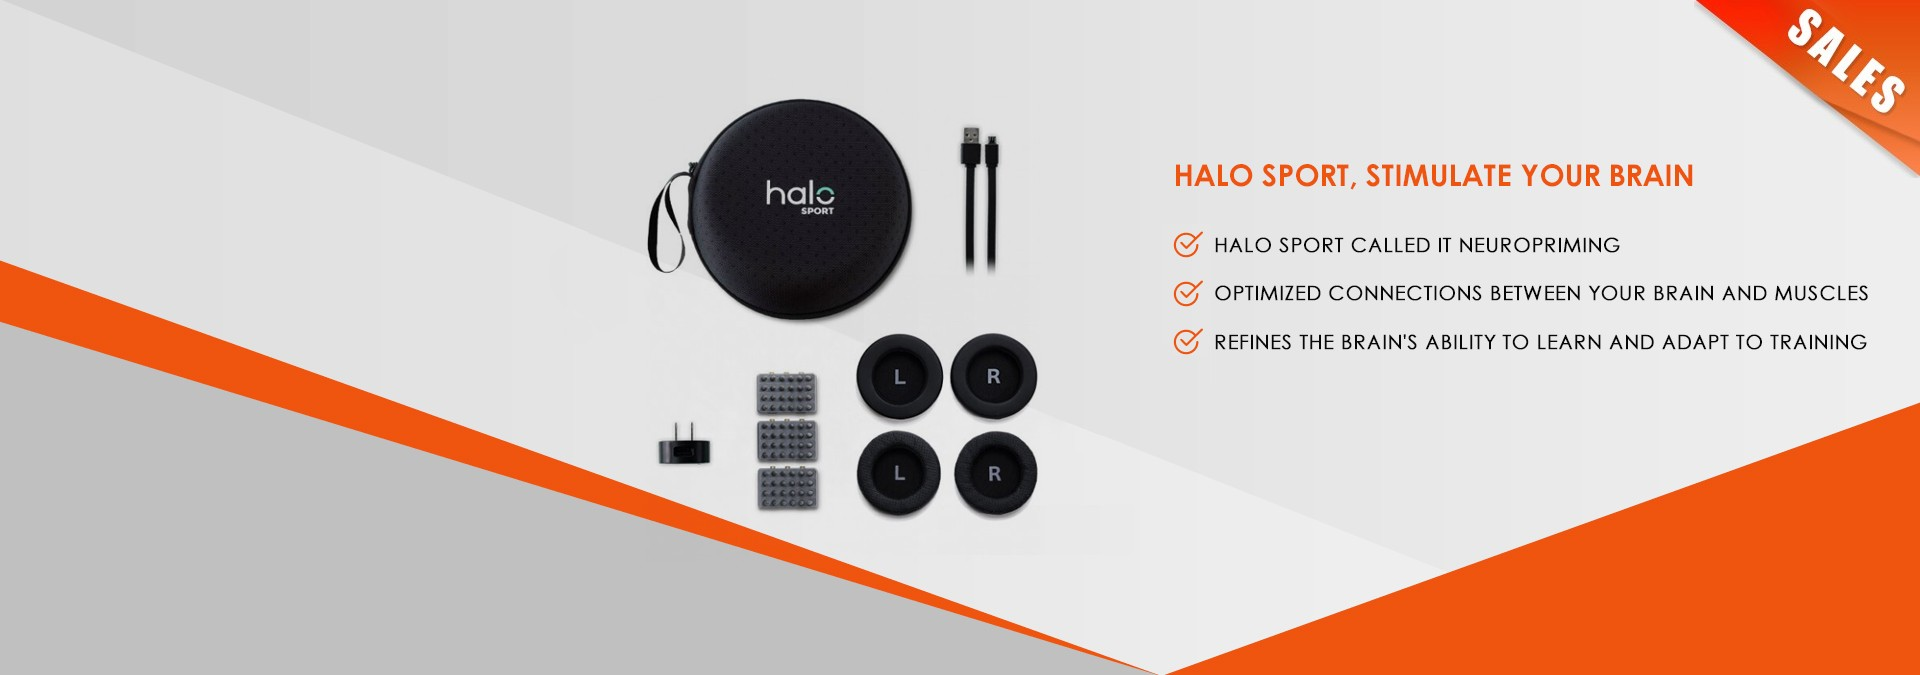 Halo Sport, Stimulate Your Brain